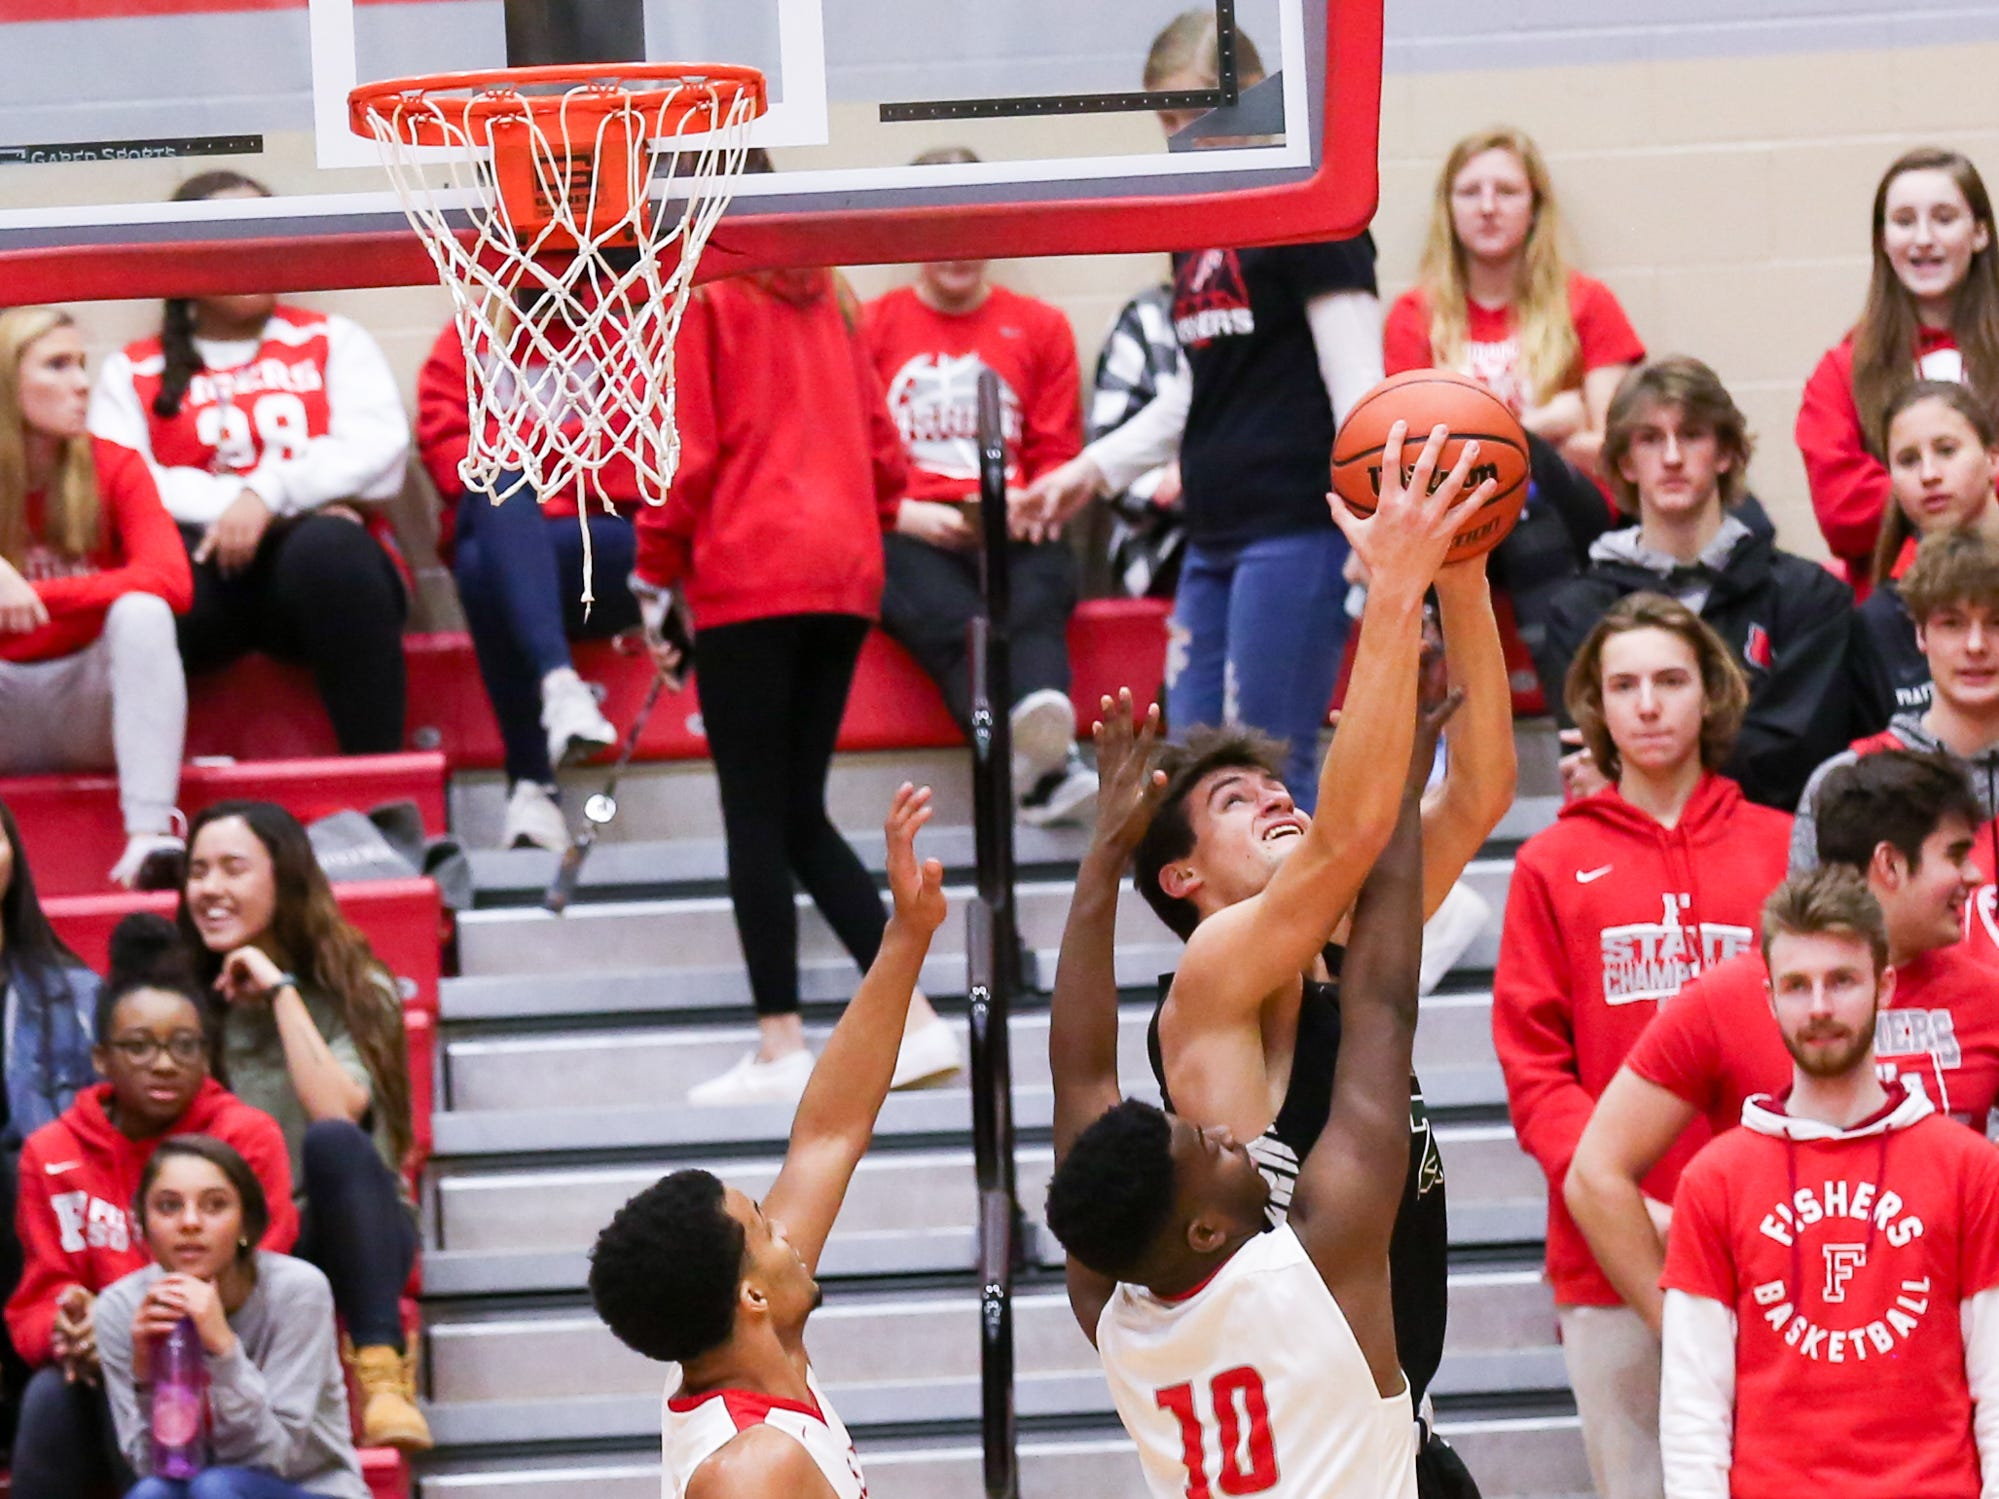 Zionsville Nathan Childress (24) and Fisher's Emmanuel Davis (10) fight for the rebound during the first half of Zionsville vs. Fishers high school boys varsity basketball game held at Fishers High School, February 15, 2019.